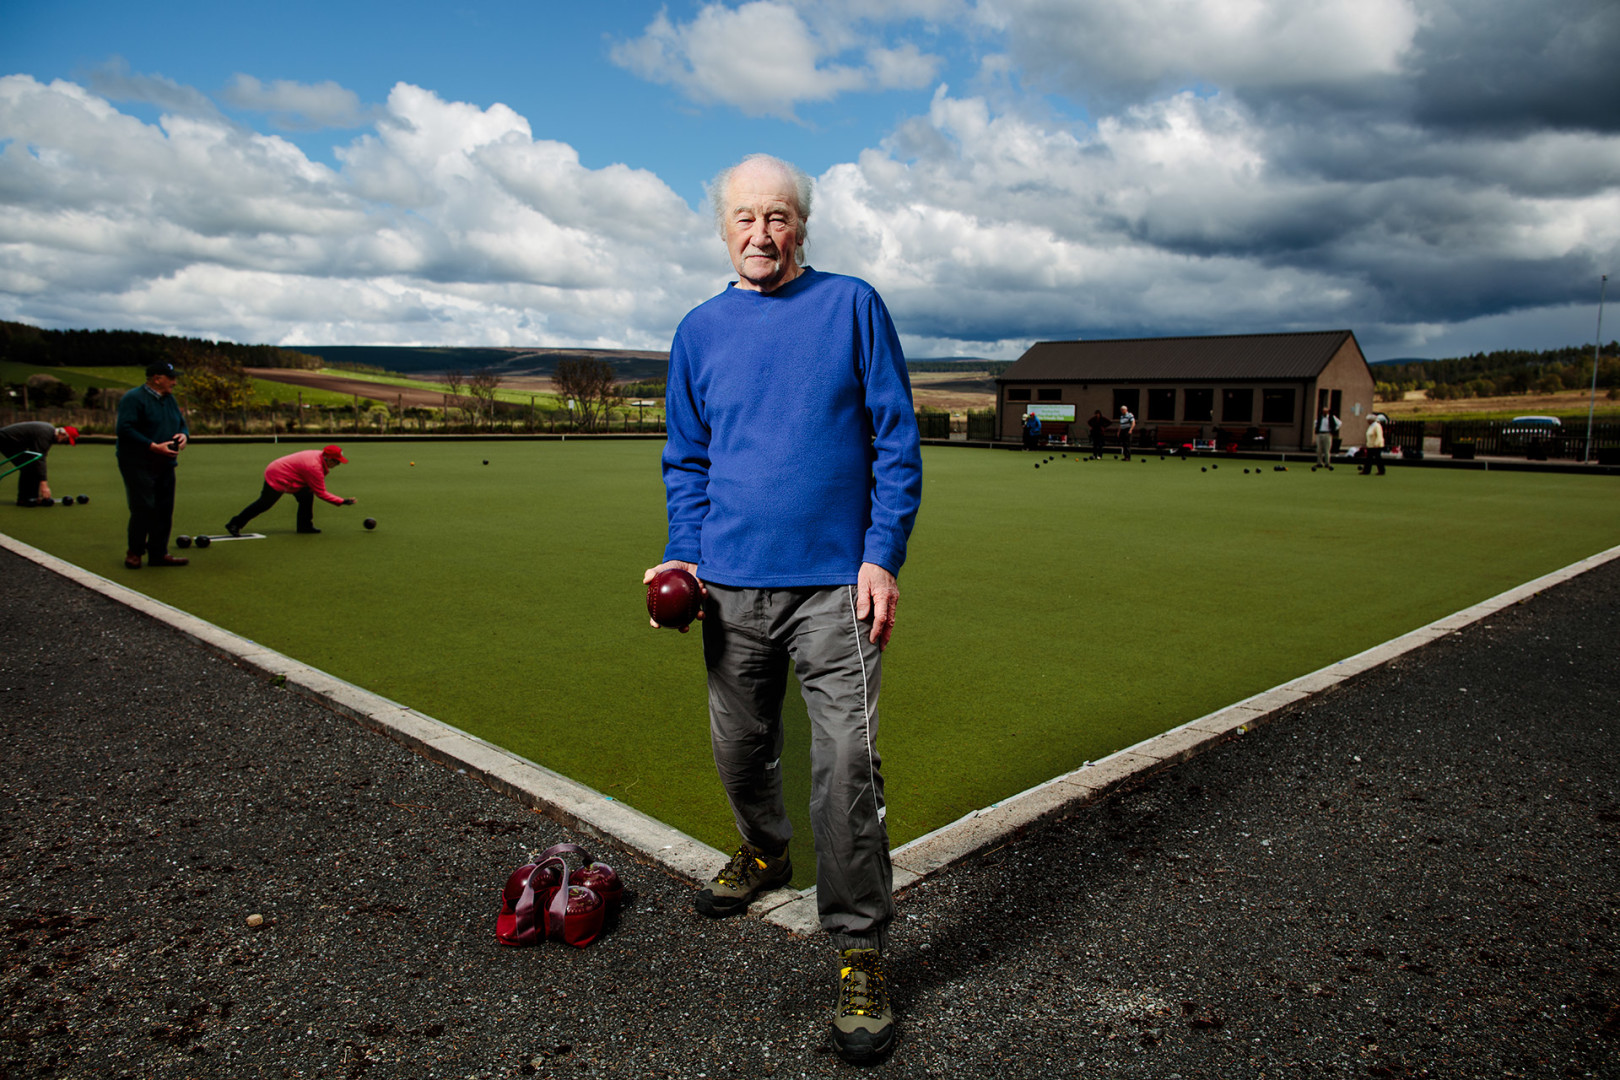 Michael Budd, Tomintoul & Glenlivet Outdoor Bowling Club, Moray.